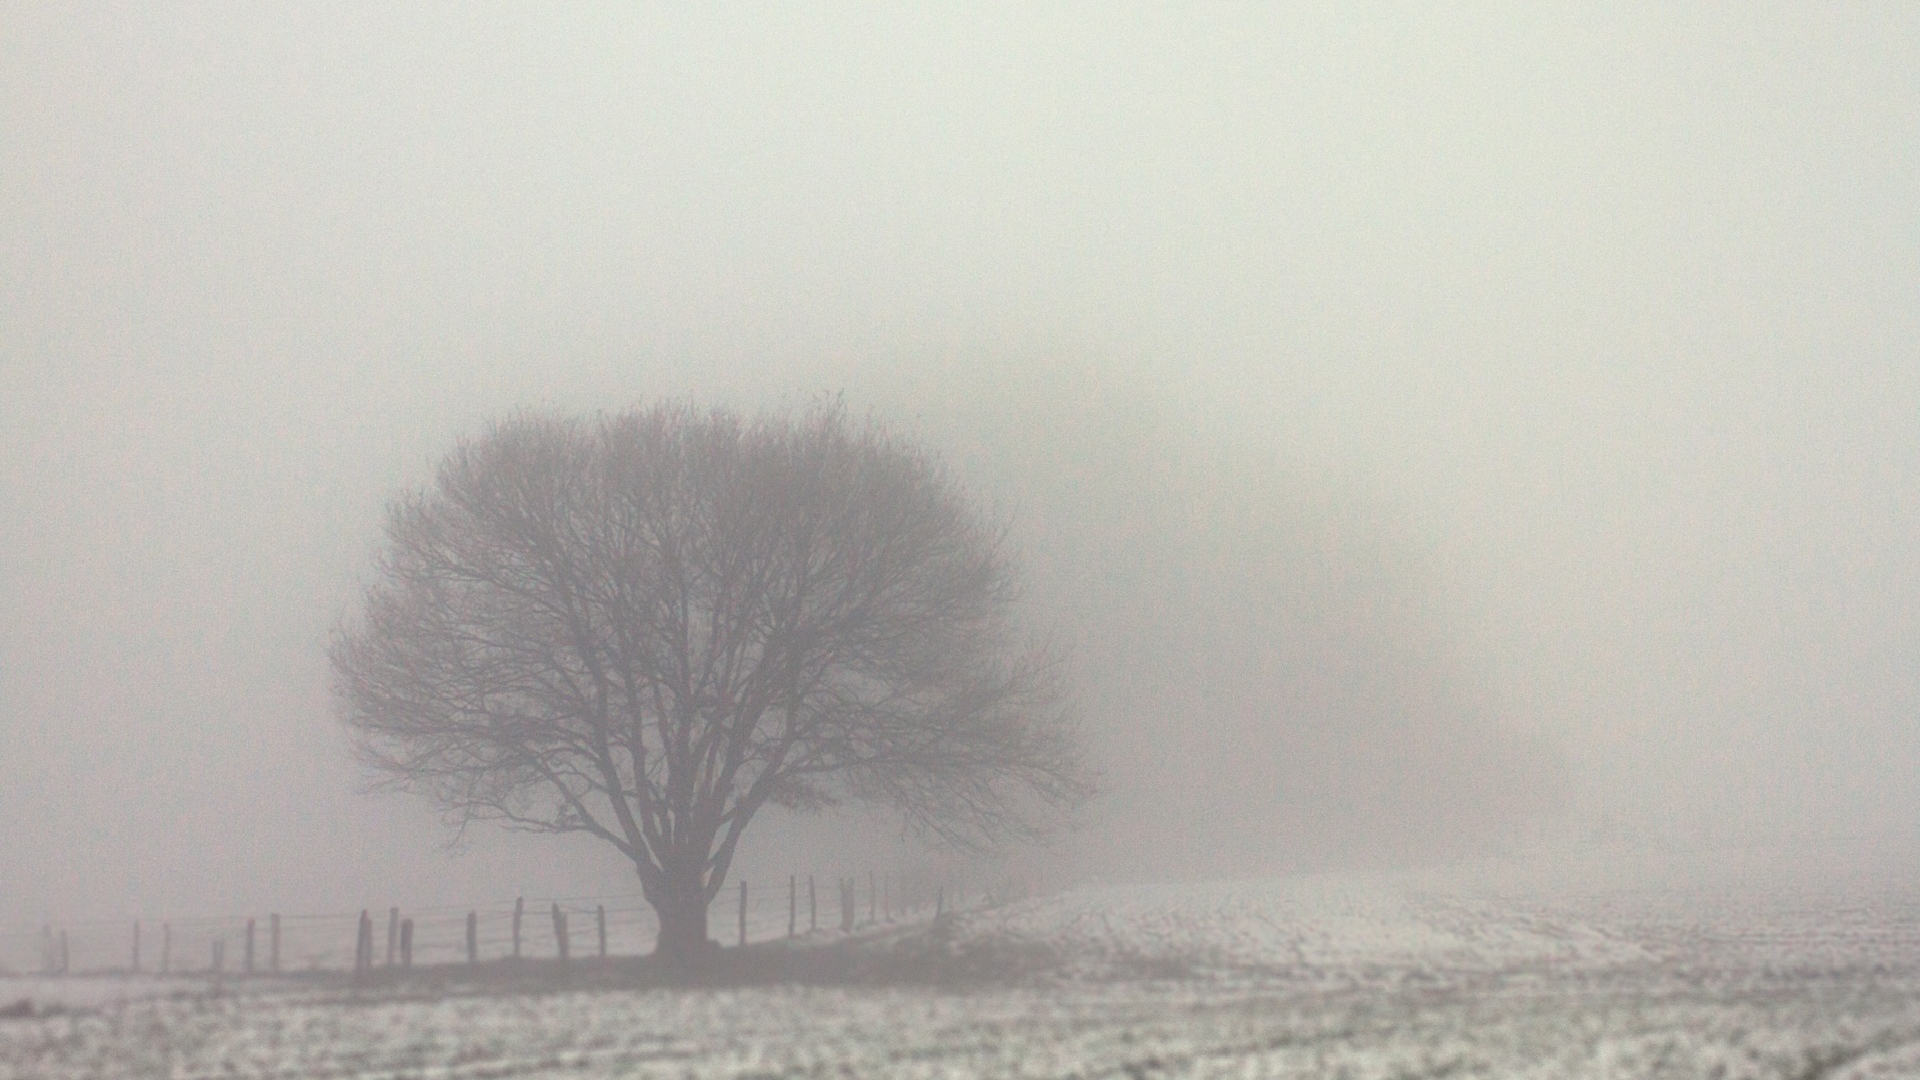 battlefield,domain,winter,,tree,,single,weather,cold,mist,subject,discipline,field of battle,battleground,winter,field of force,field,,fog,,city,scenery,field of operation,nature,scene,gloomy,germany,bergischesland,solingen,arena,tree,field of view